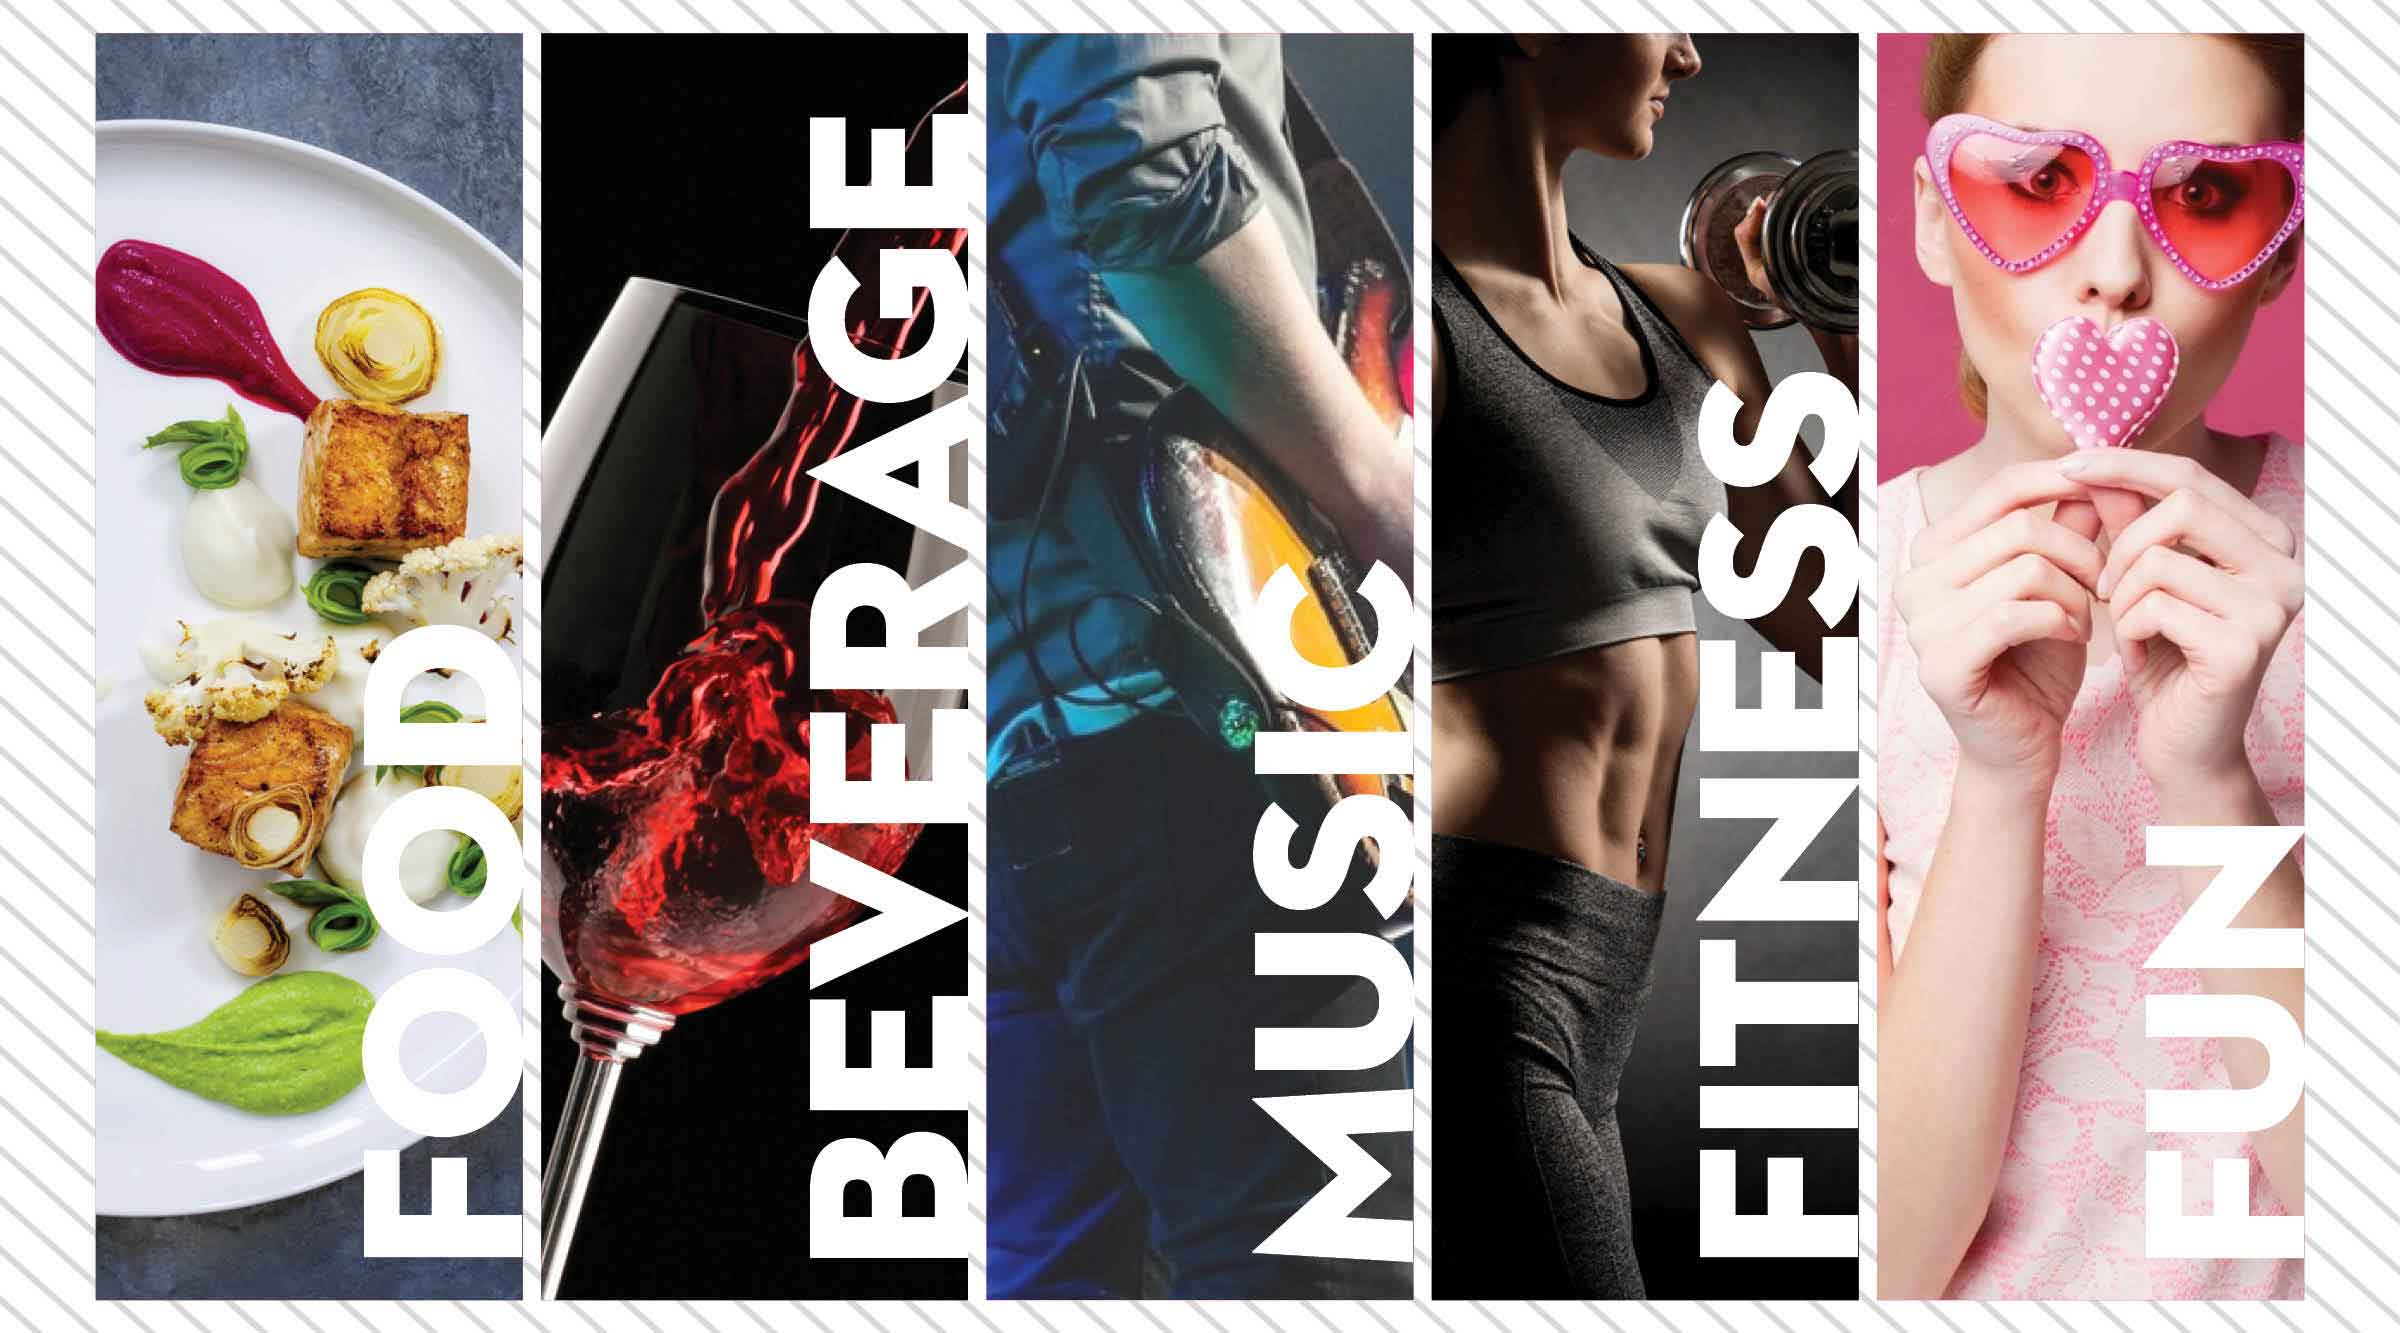 Our 5 service channels of Food, Beverage, Music, Fitness, and Fun.